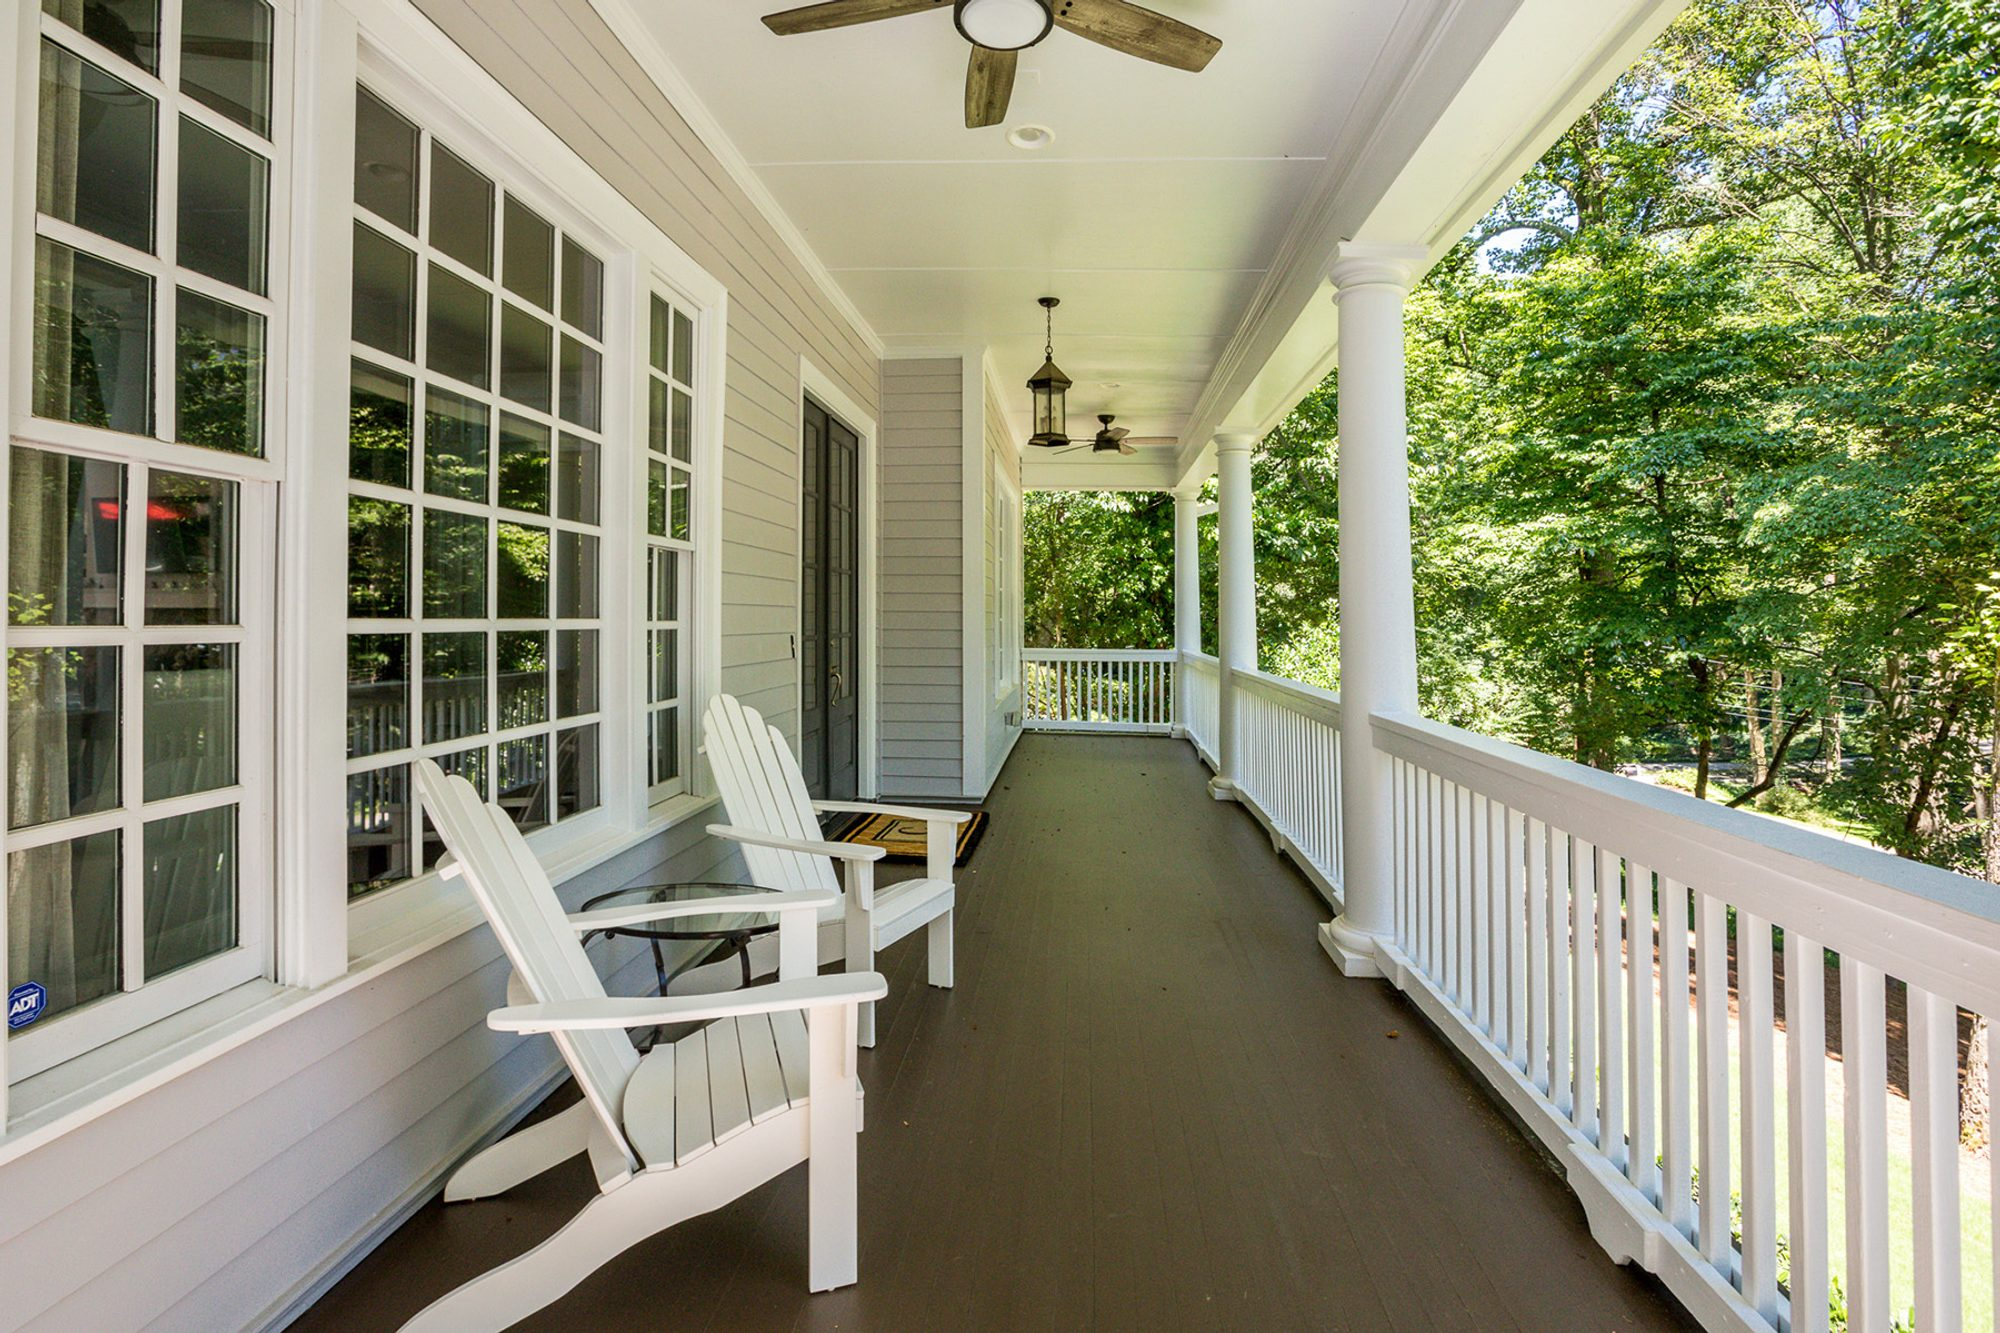 Covered porch with wood flooring painted black. Gray siding, white trim, rails & columns with a black front door.